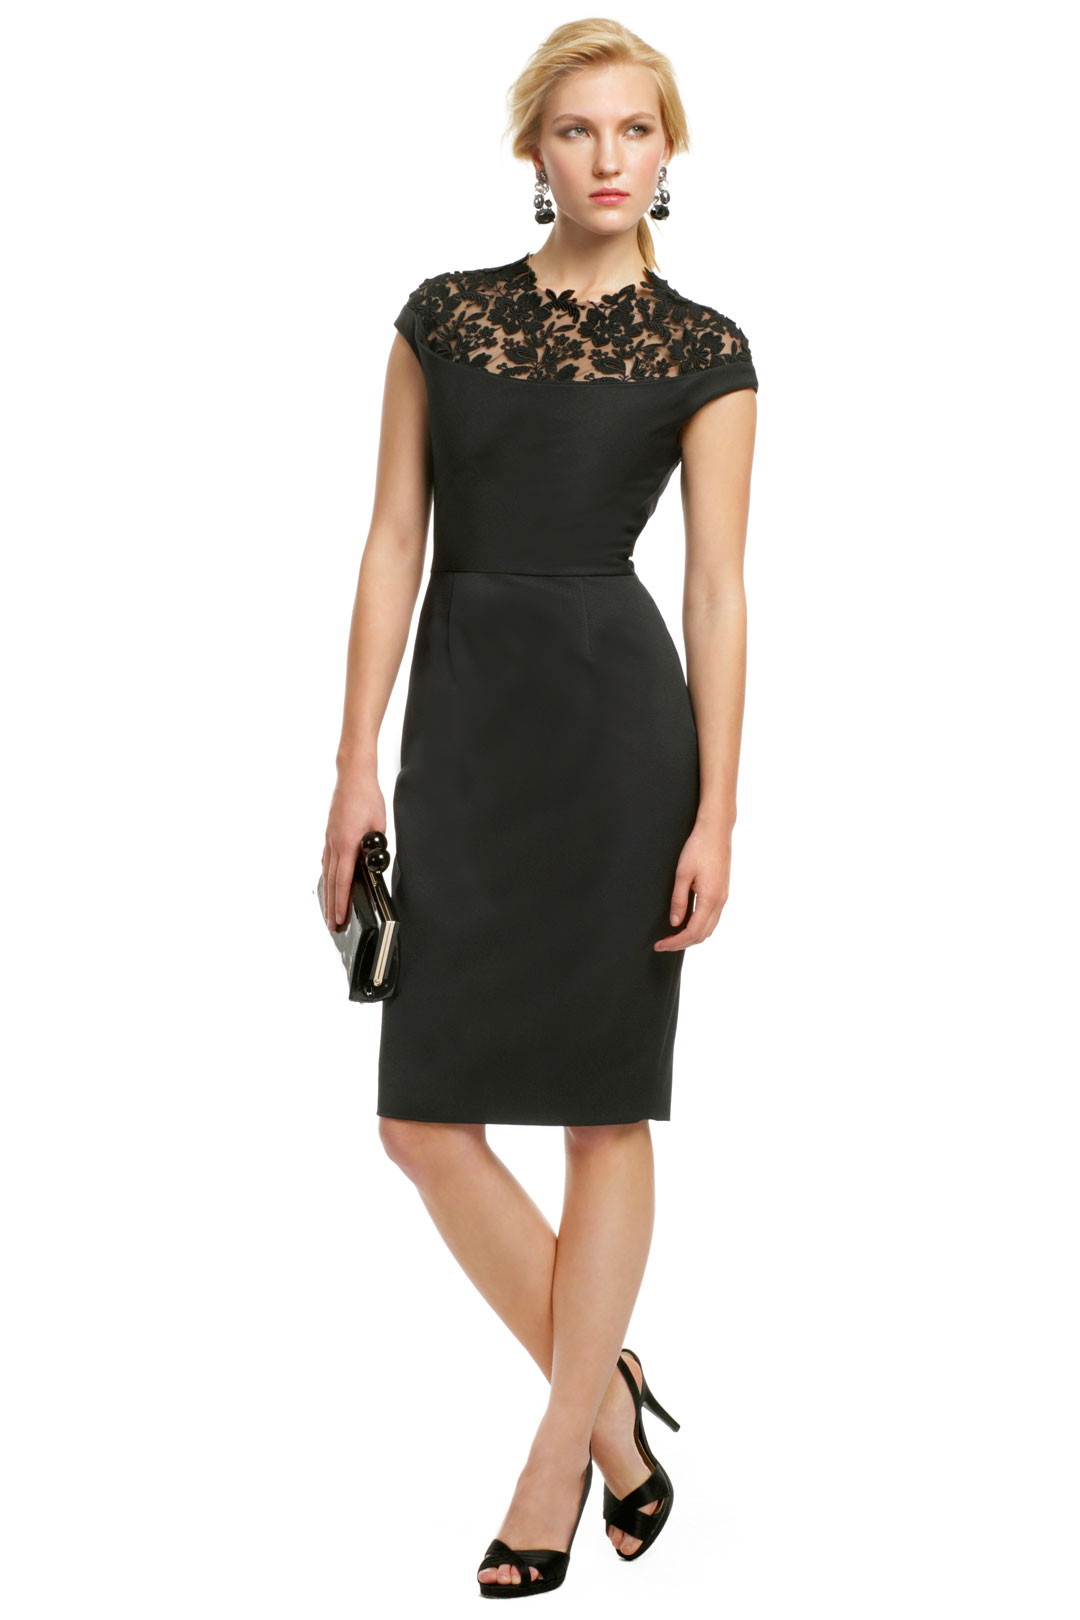 black sheath dress dressed up girl